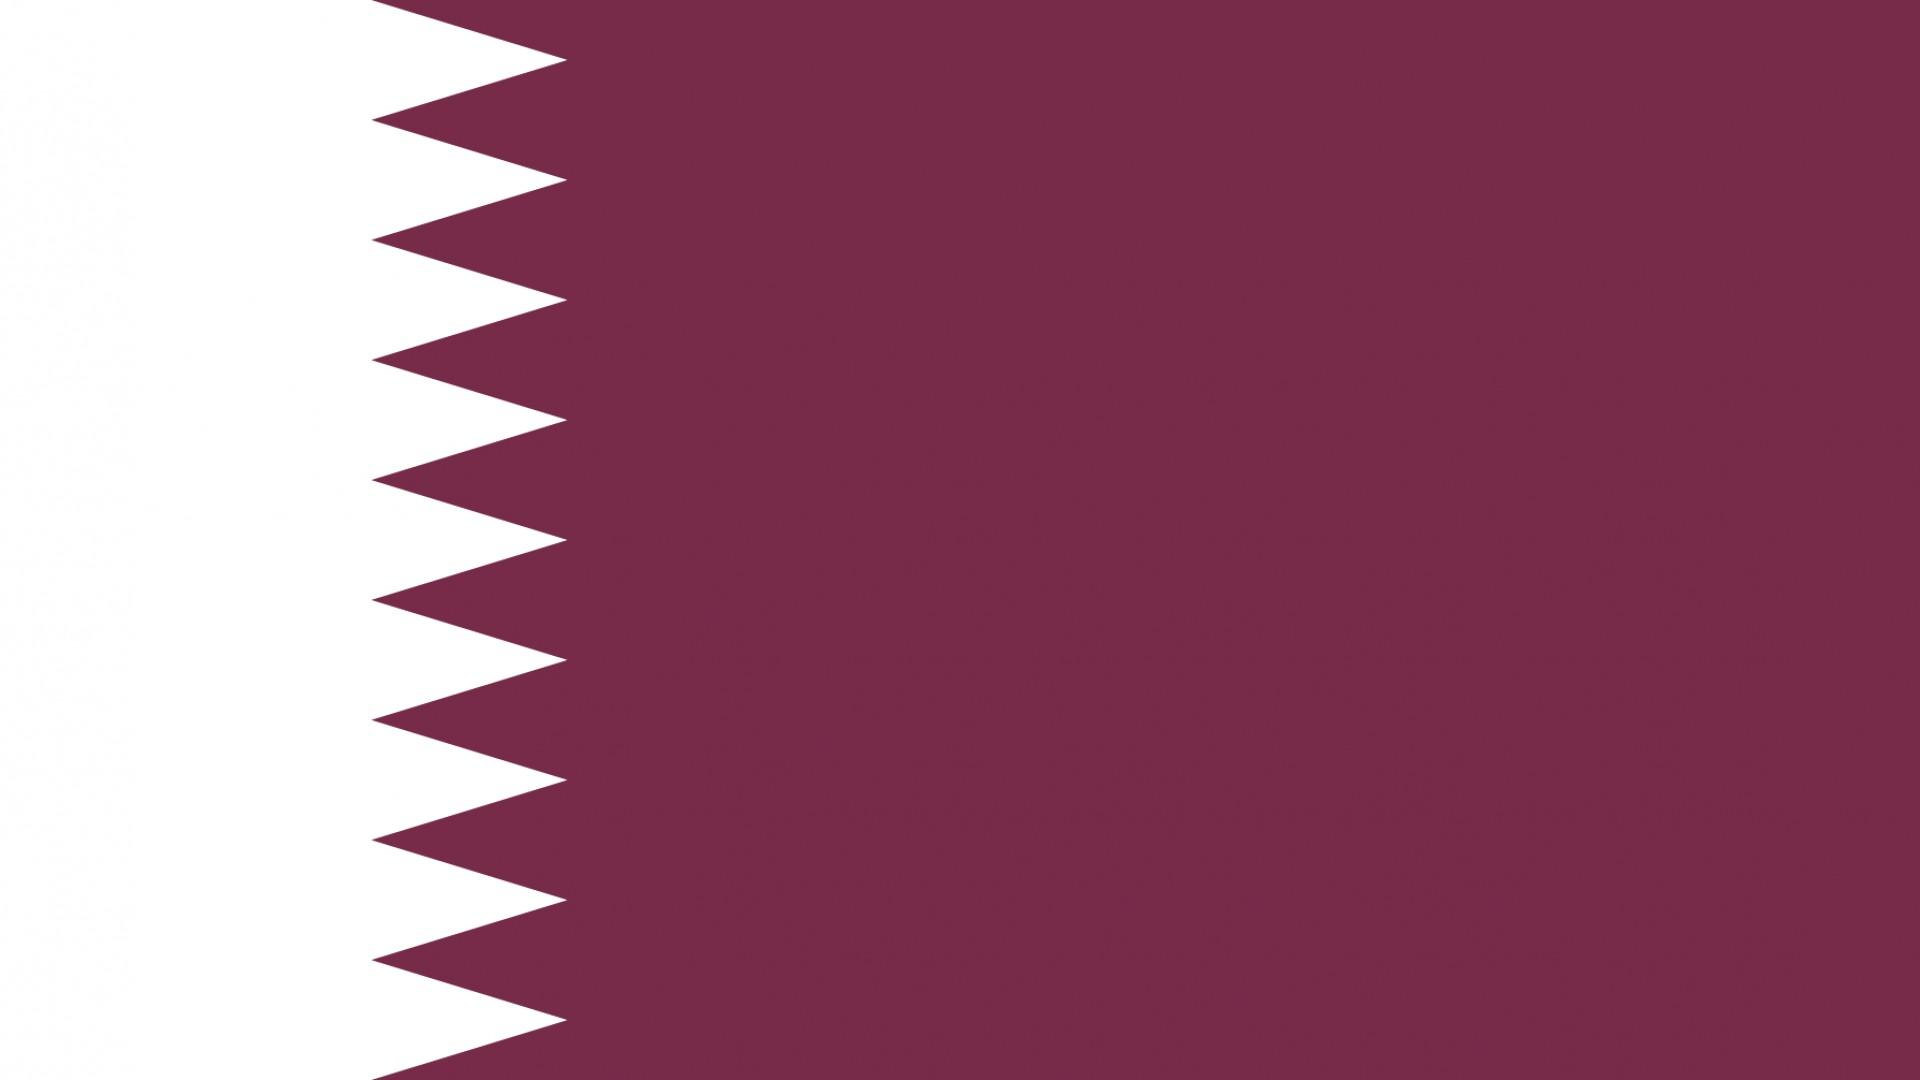 Qatar Flag HD Wallpaper, Backgrounds Image